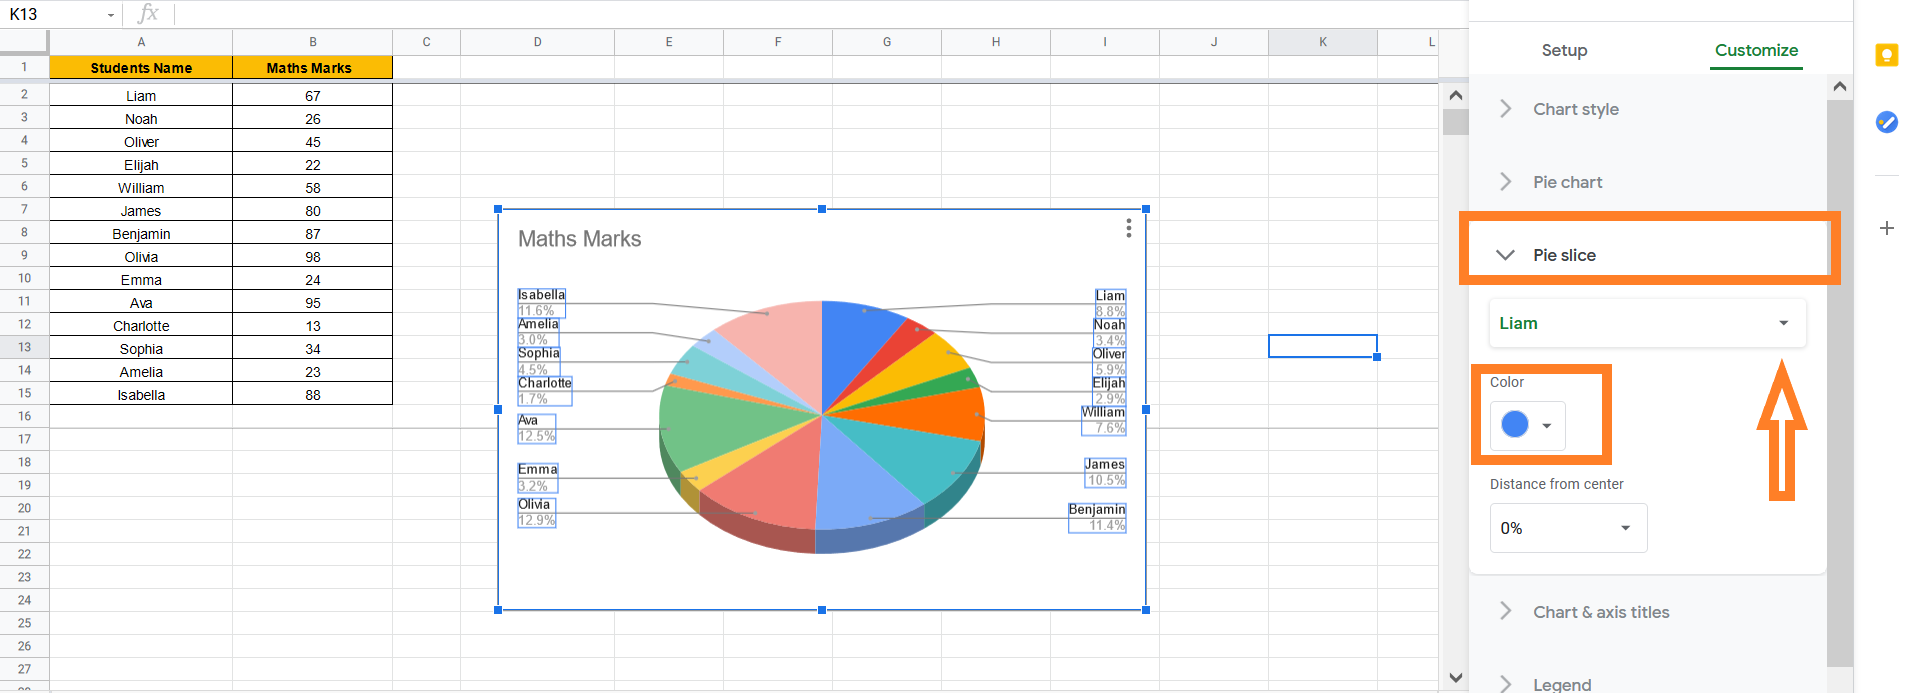 how to change pie slices color on pie chart